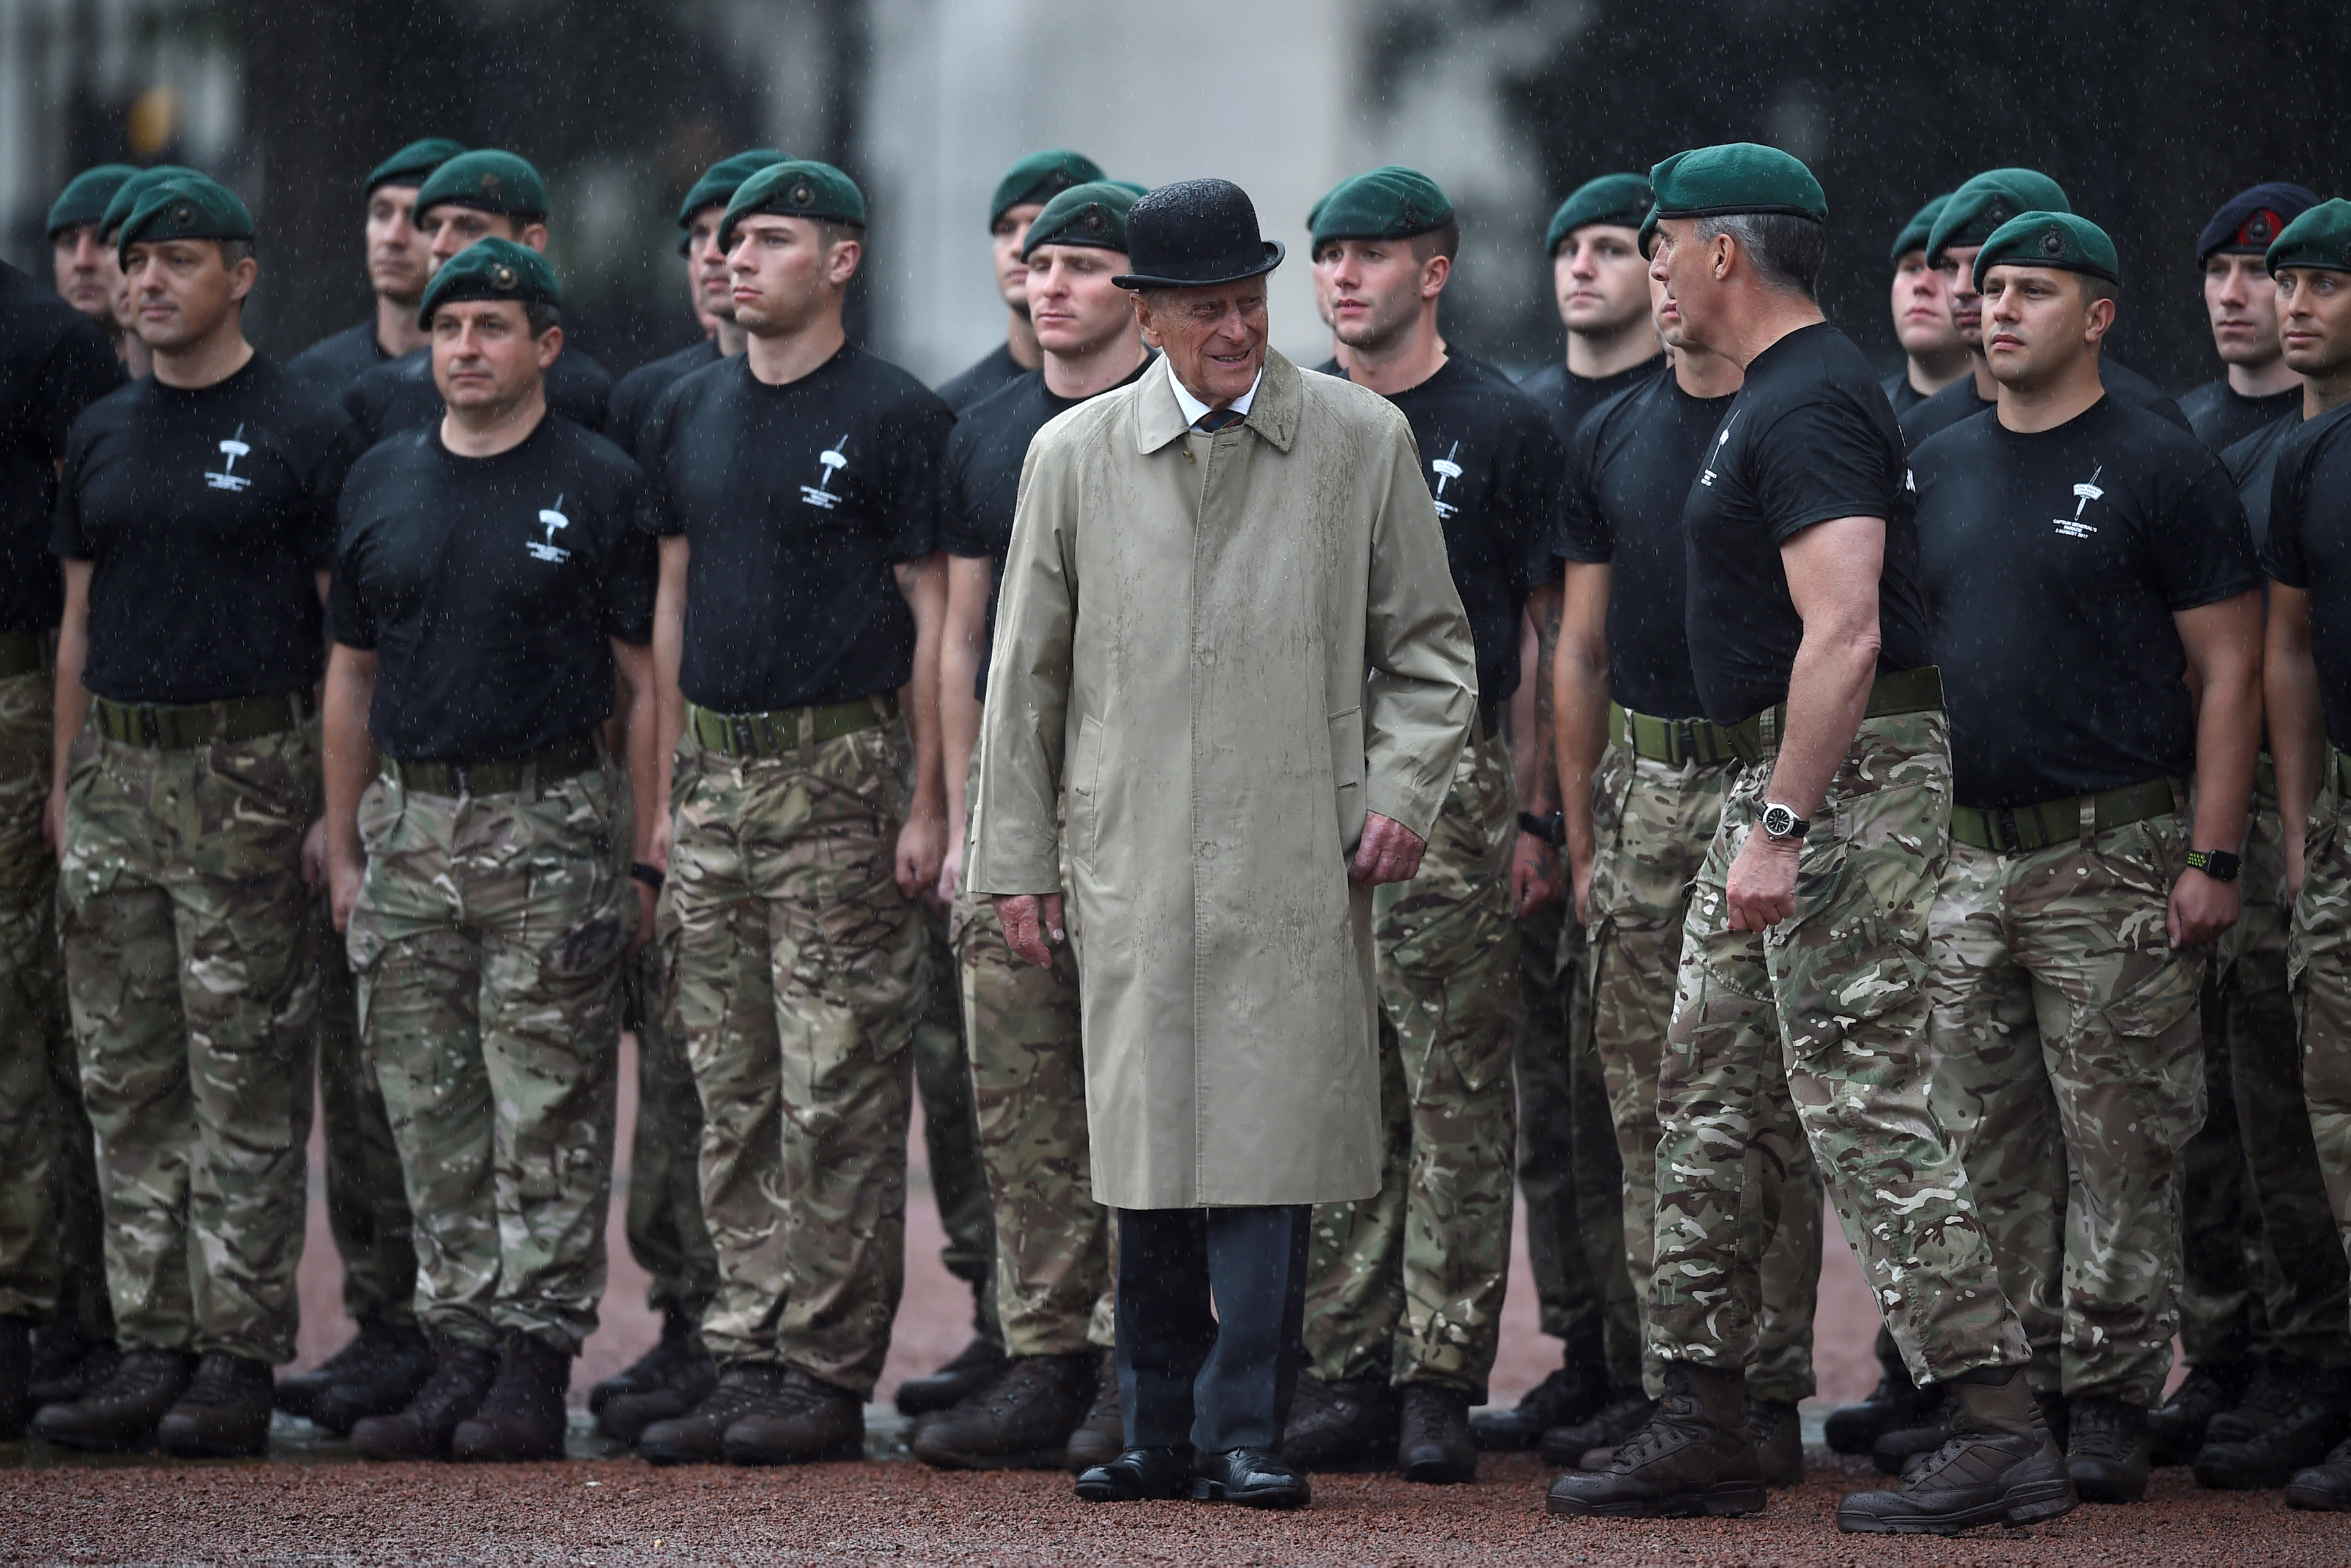 LONDON, ENGLAND - AUGUST 2: Prince Philip, Duke of Edinburgh (C) in his role as Captain General, Royal Marines, makes his final individual public engagement as he attends a parade to mark the finale of the 1664 Global Challenge, on the Buckingham Palace Forecourt on August 2, 2017 in London, England.